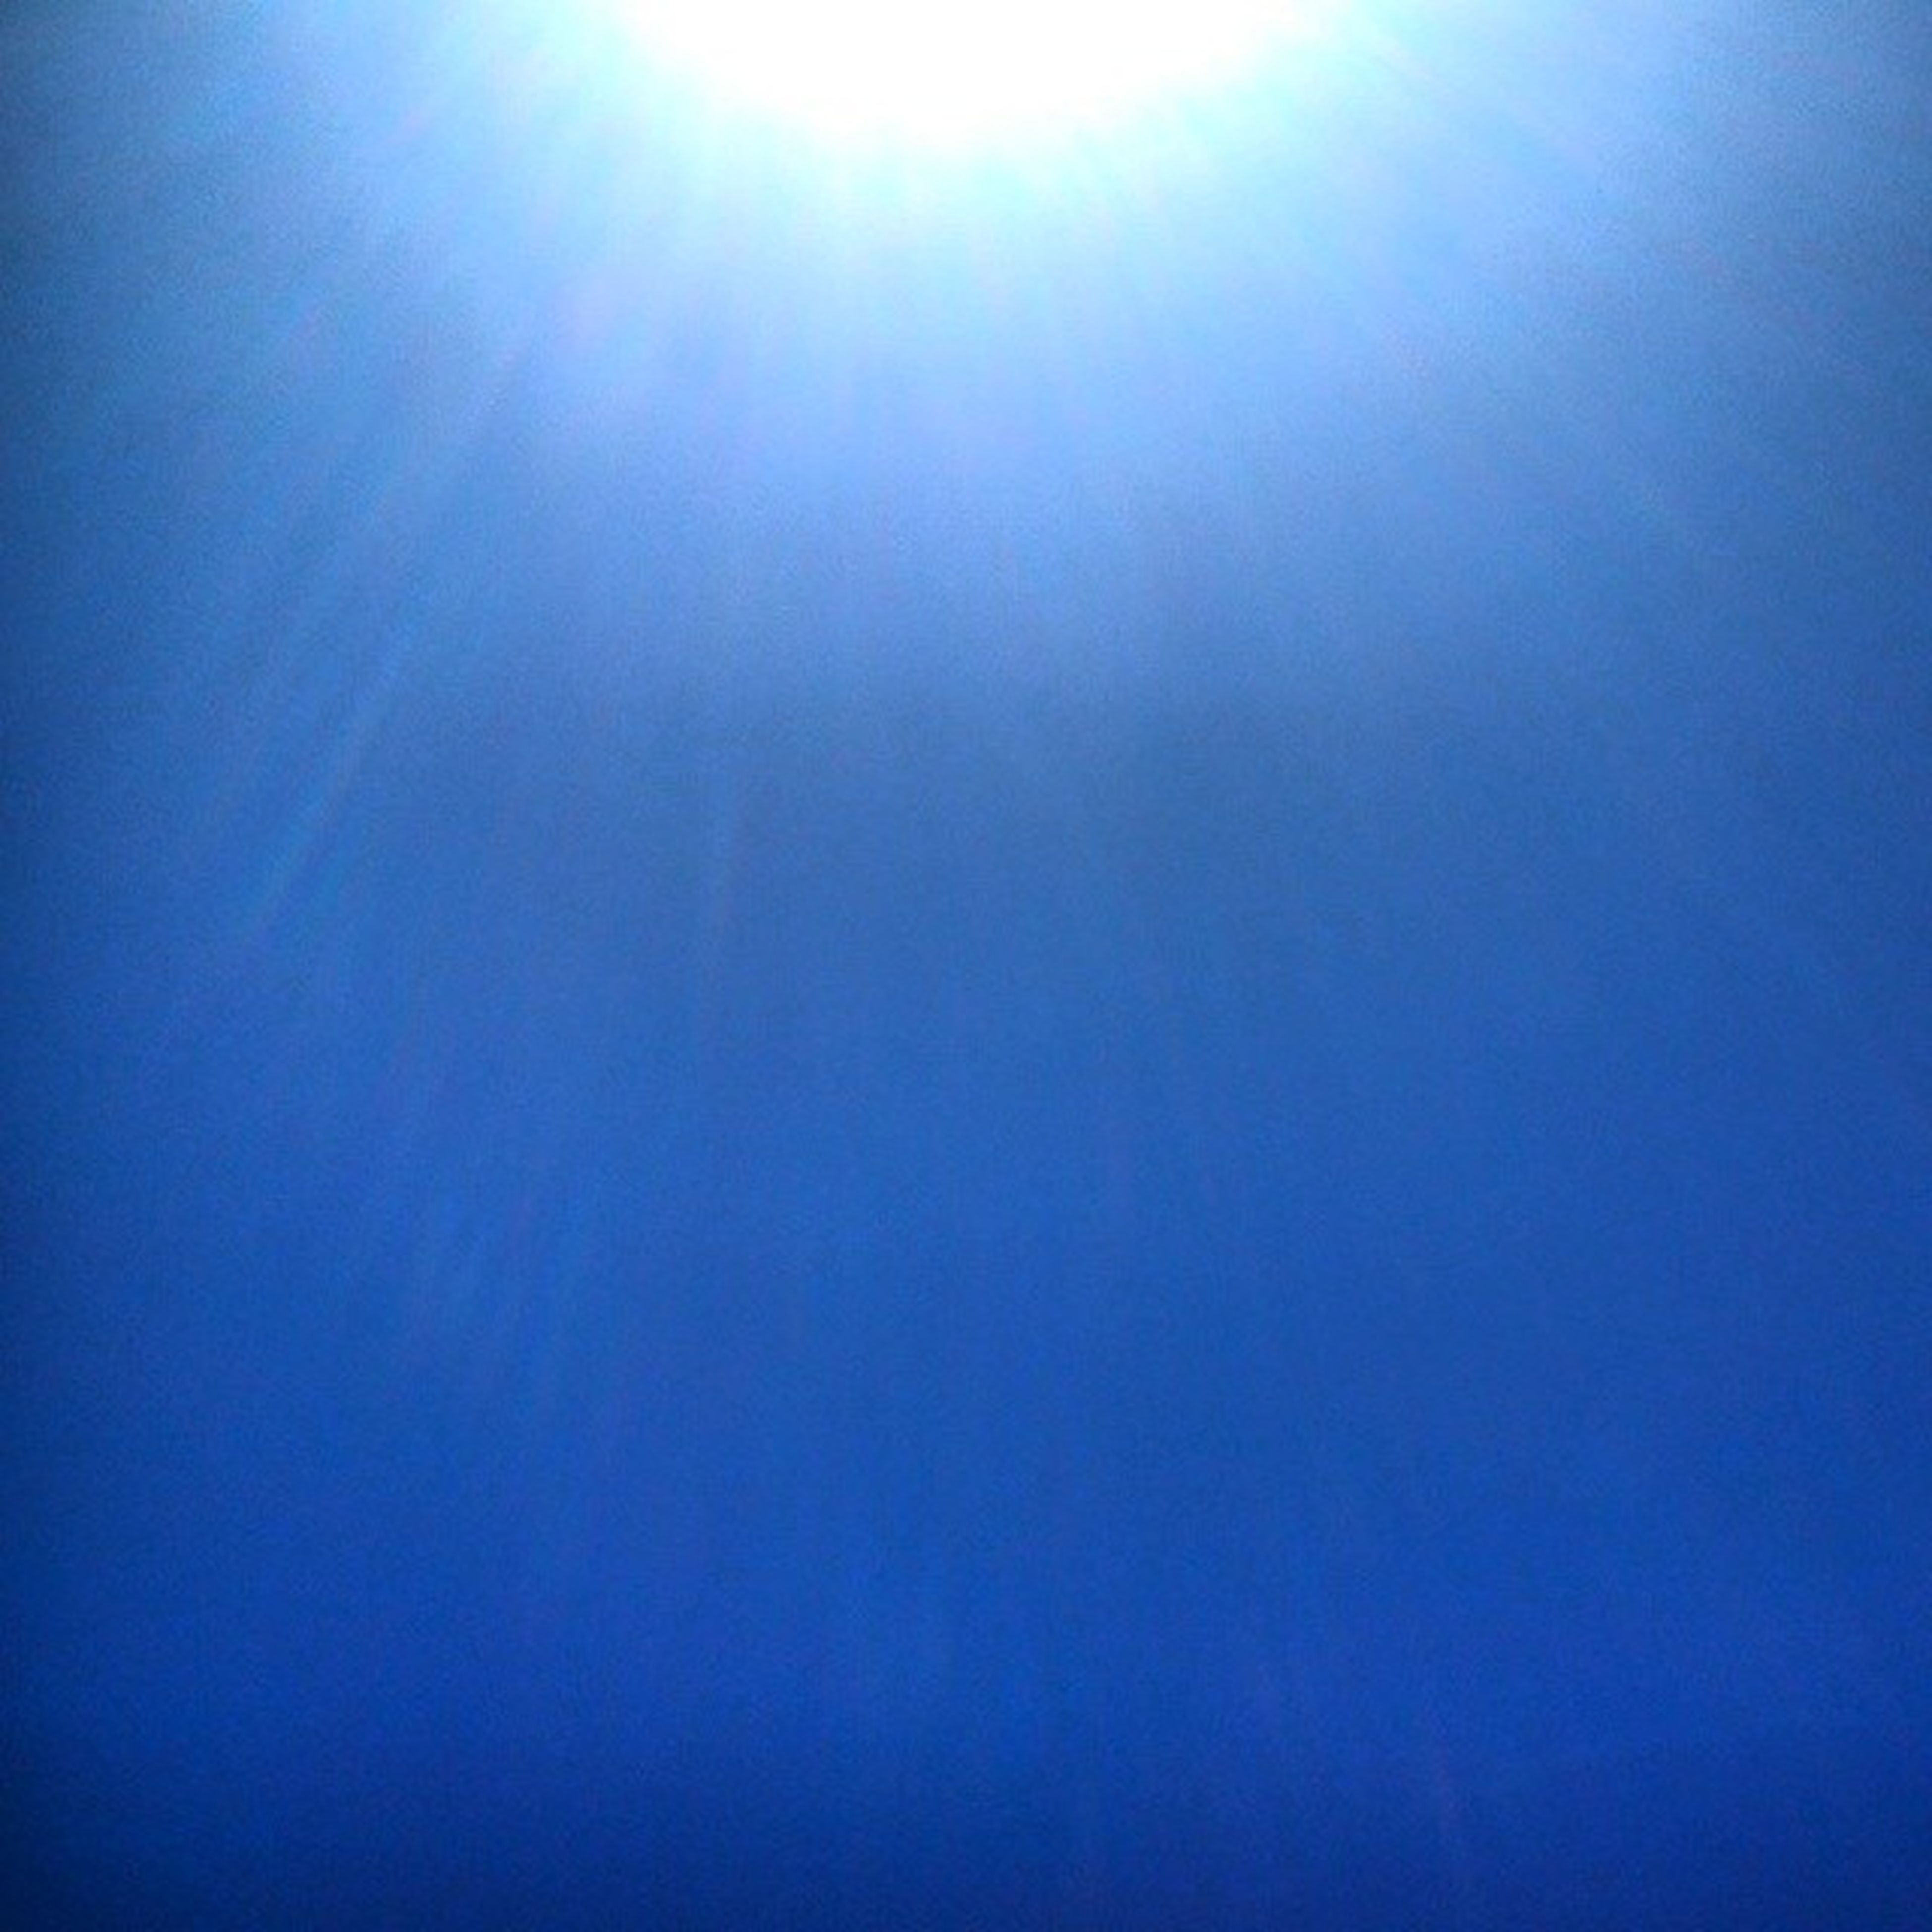 blue, low angle view, copy space, clear sky, sun, tranquility, beauty in nature, tranquil scene, nature, sunlight, sunbeam, scenics, sky, bright, sky only, backgrounds, idyllic, no people, lens flare, outdoors